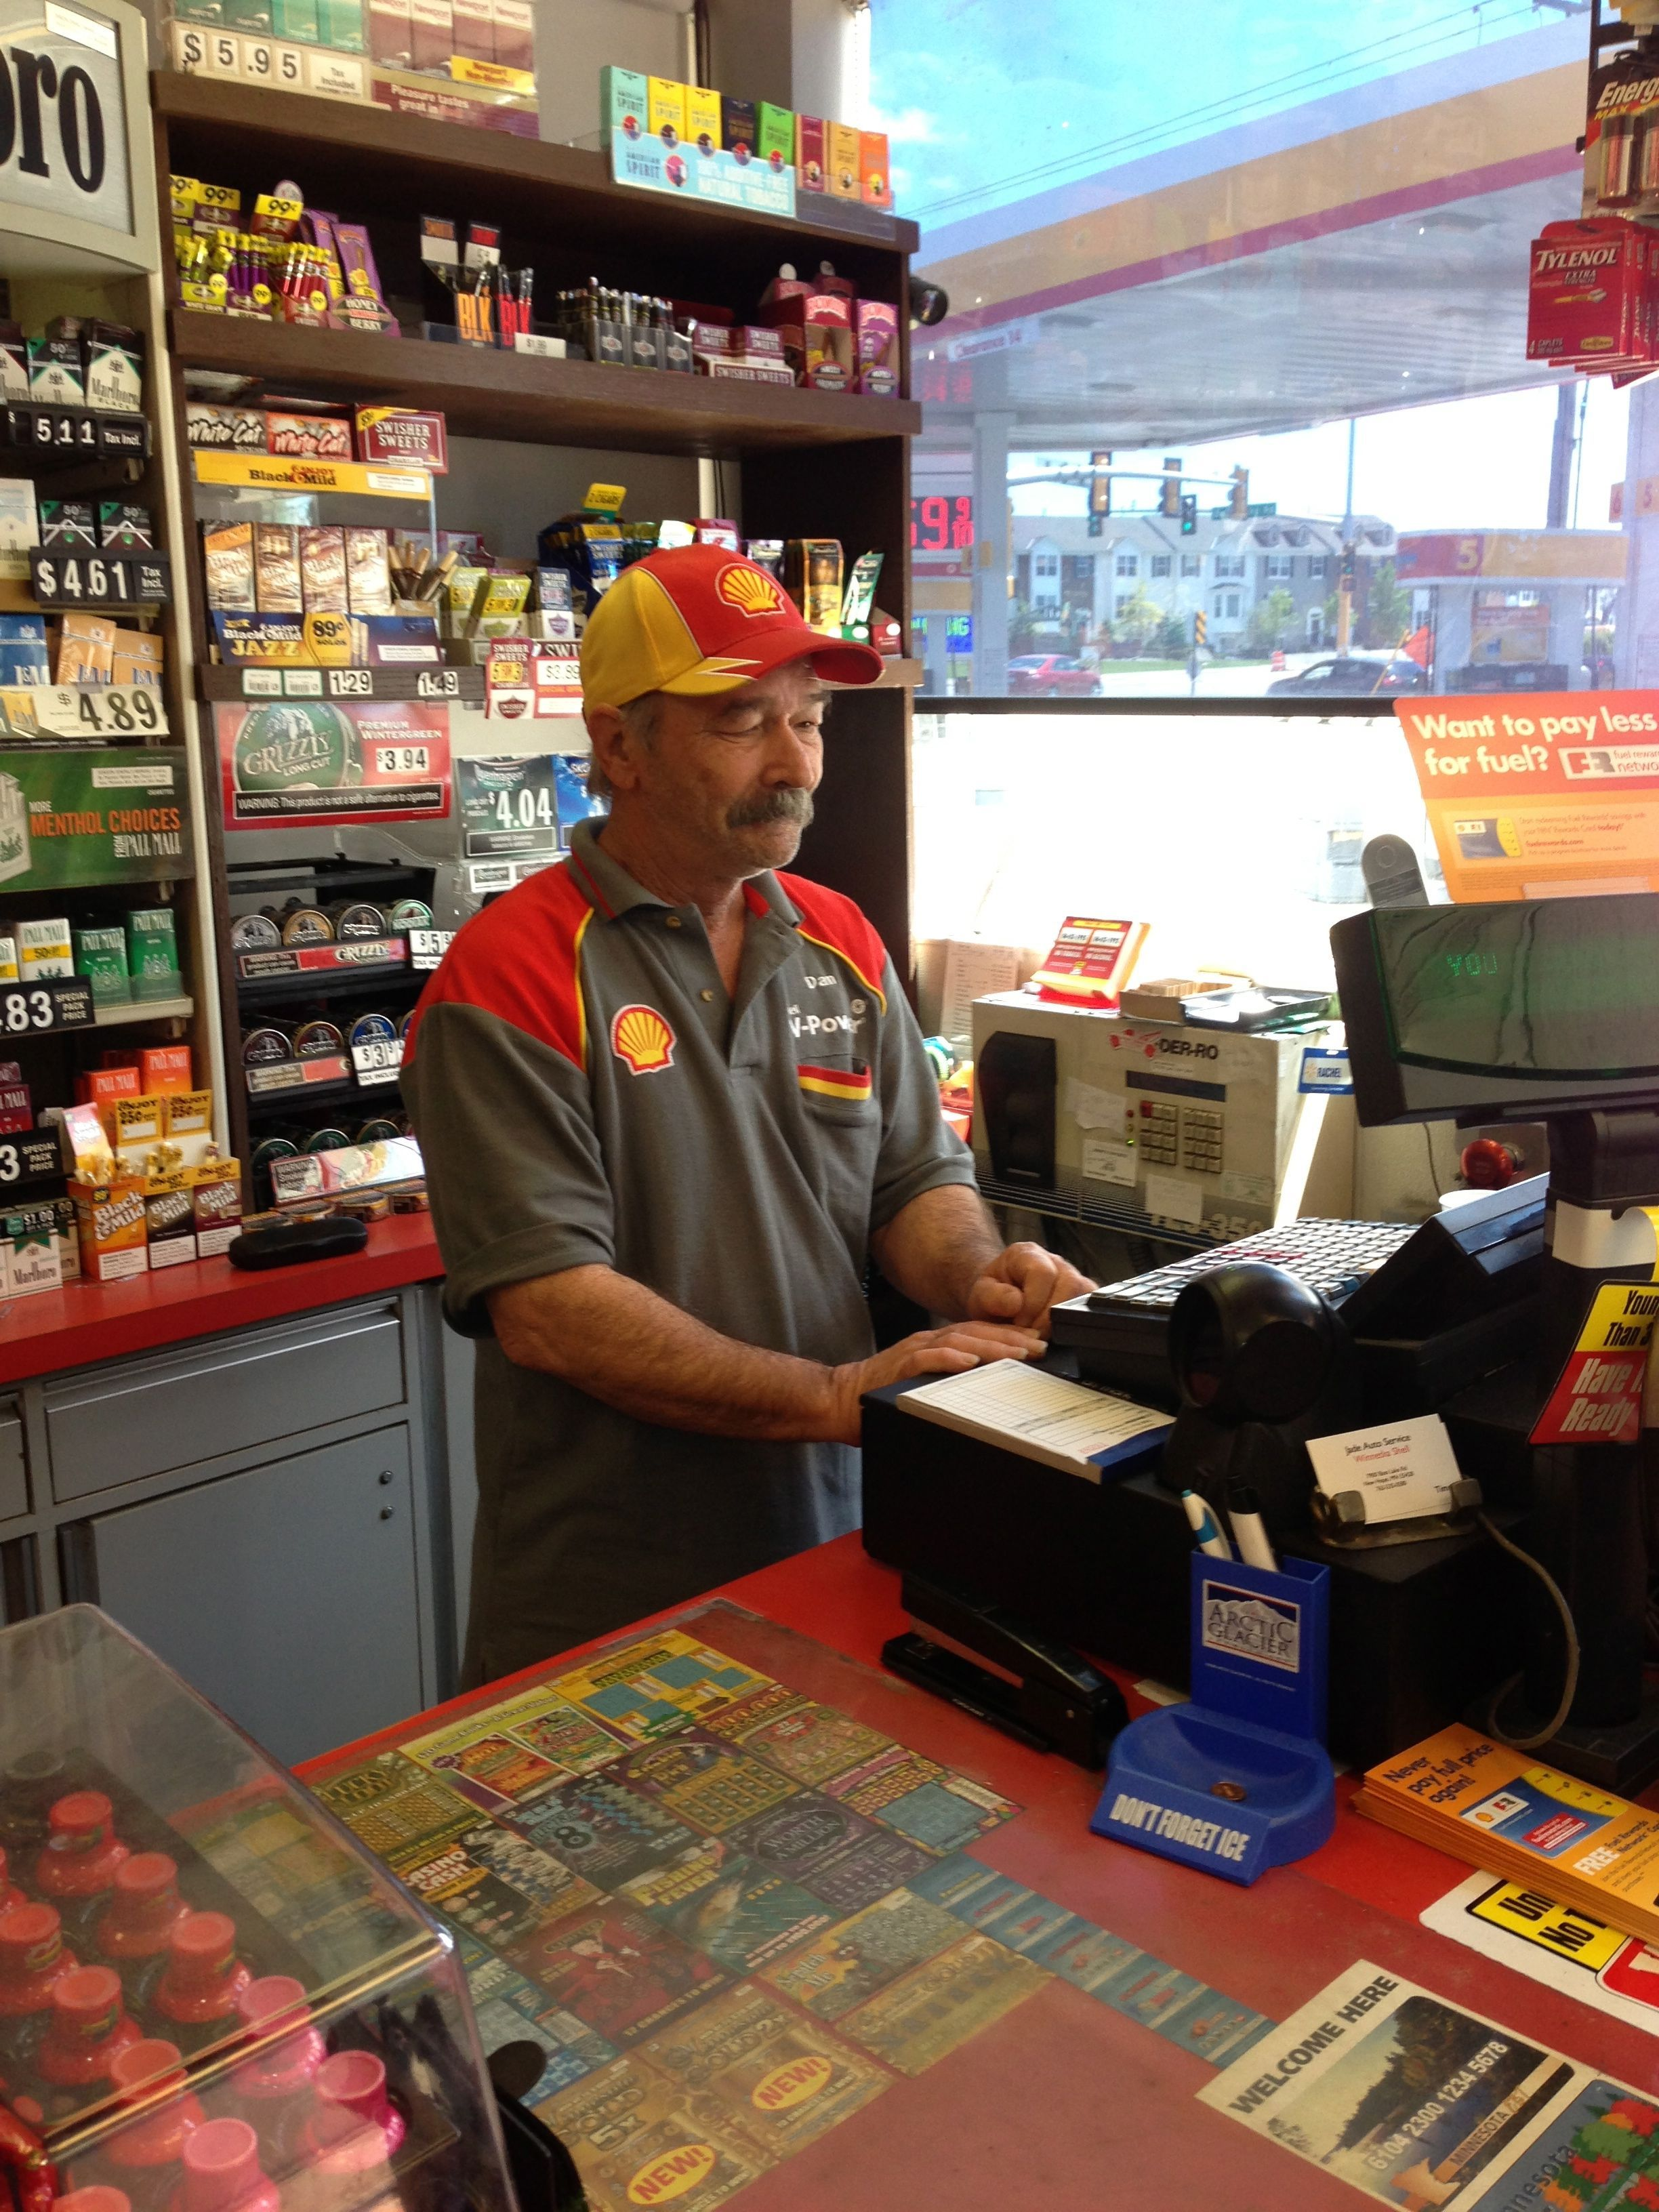 Our afternoon and evening cashier Dan providing friendly